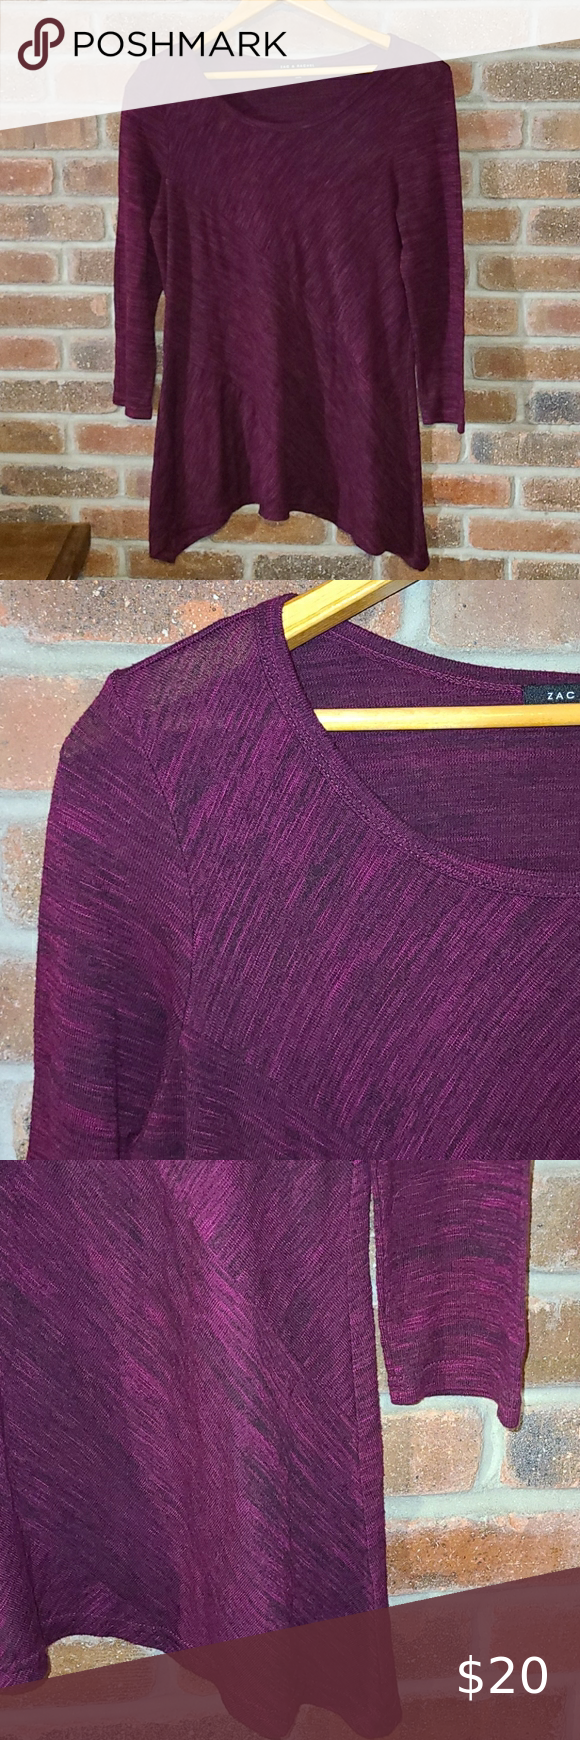 Zac & Rachel Tappered Bottom Blouse Excellent Used Condition Linear pattern weave Zac & Rachel Tops Blouses